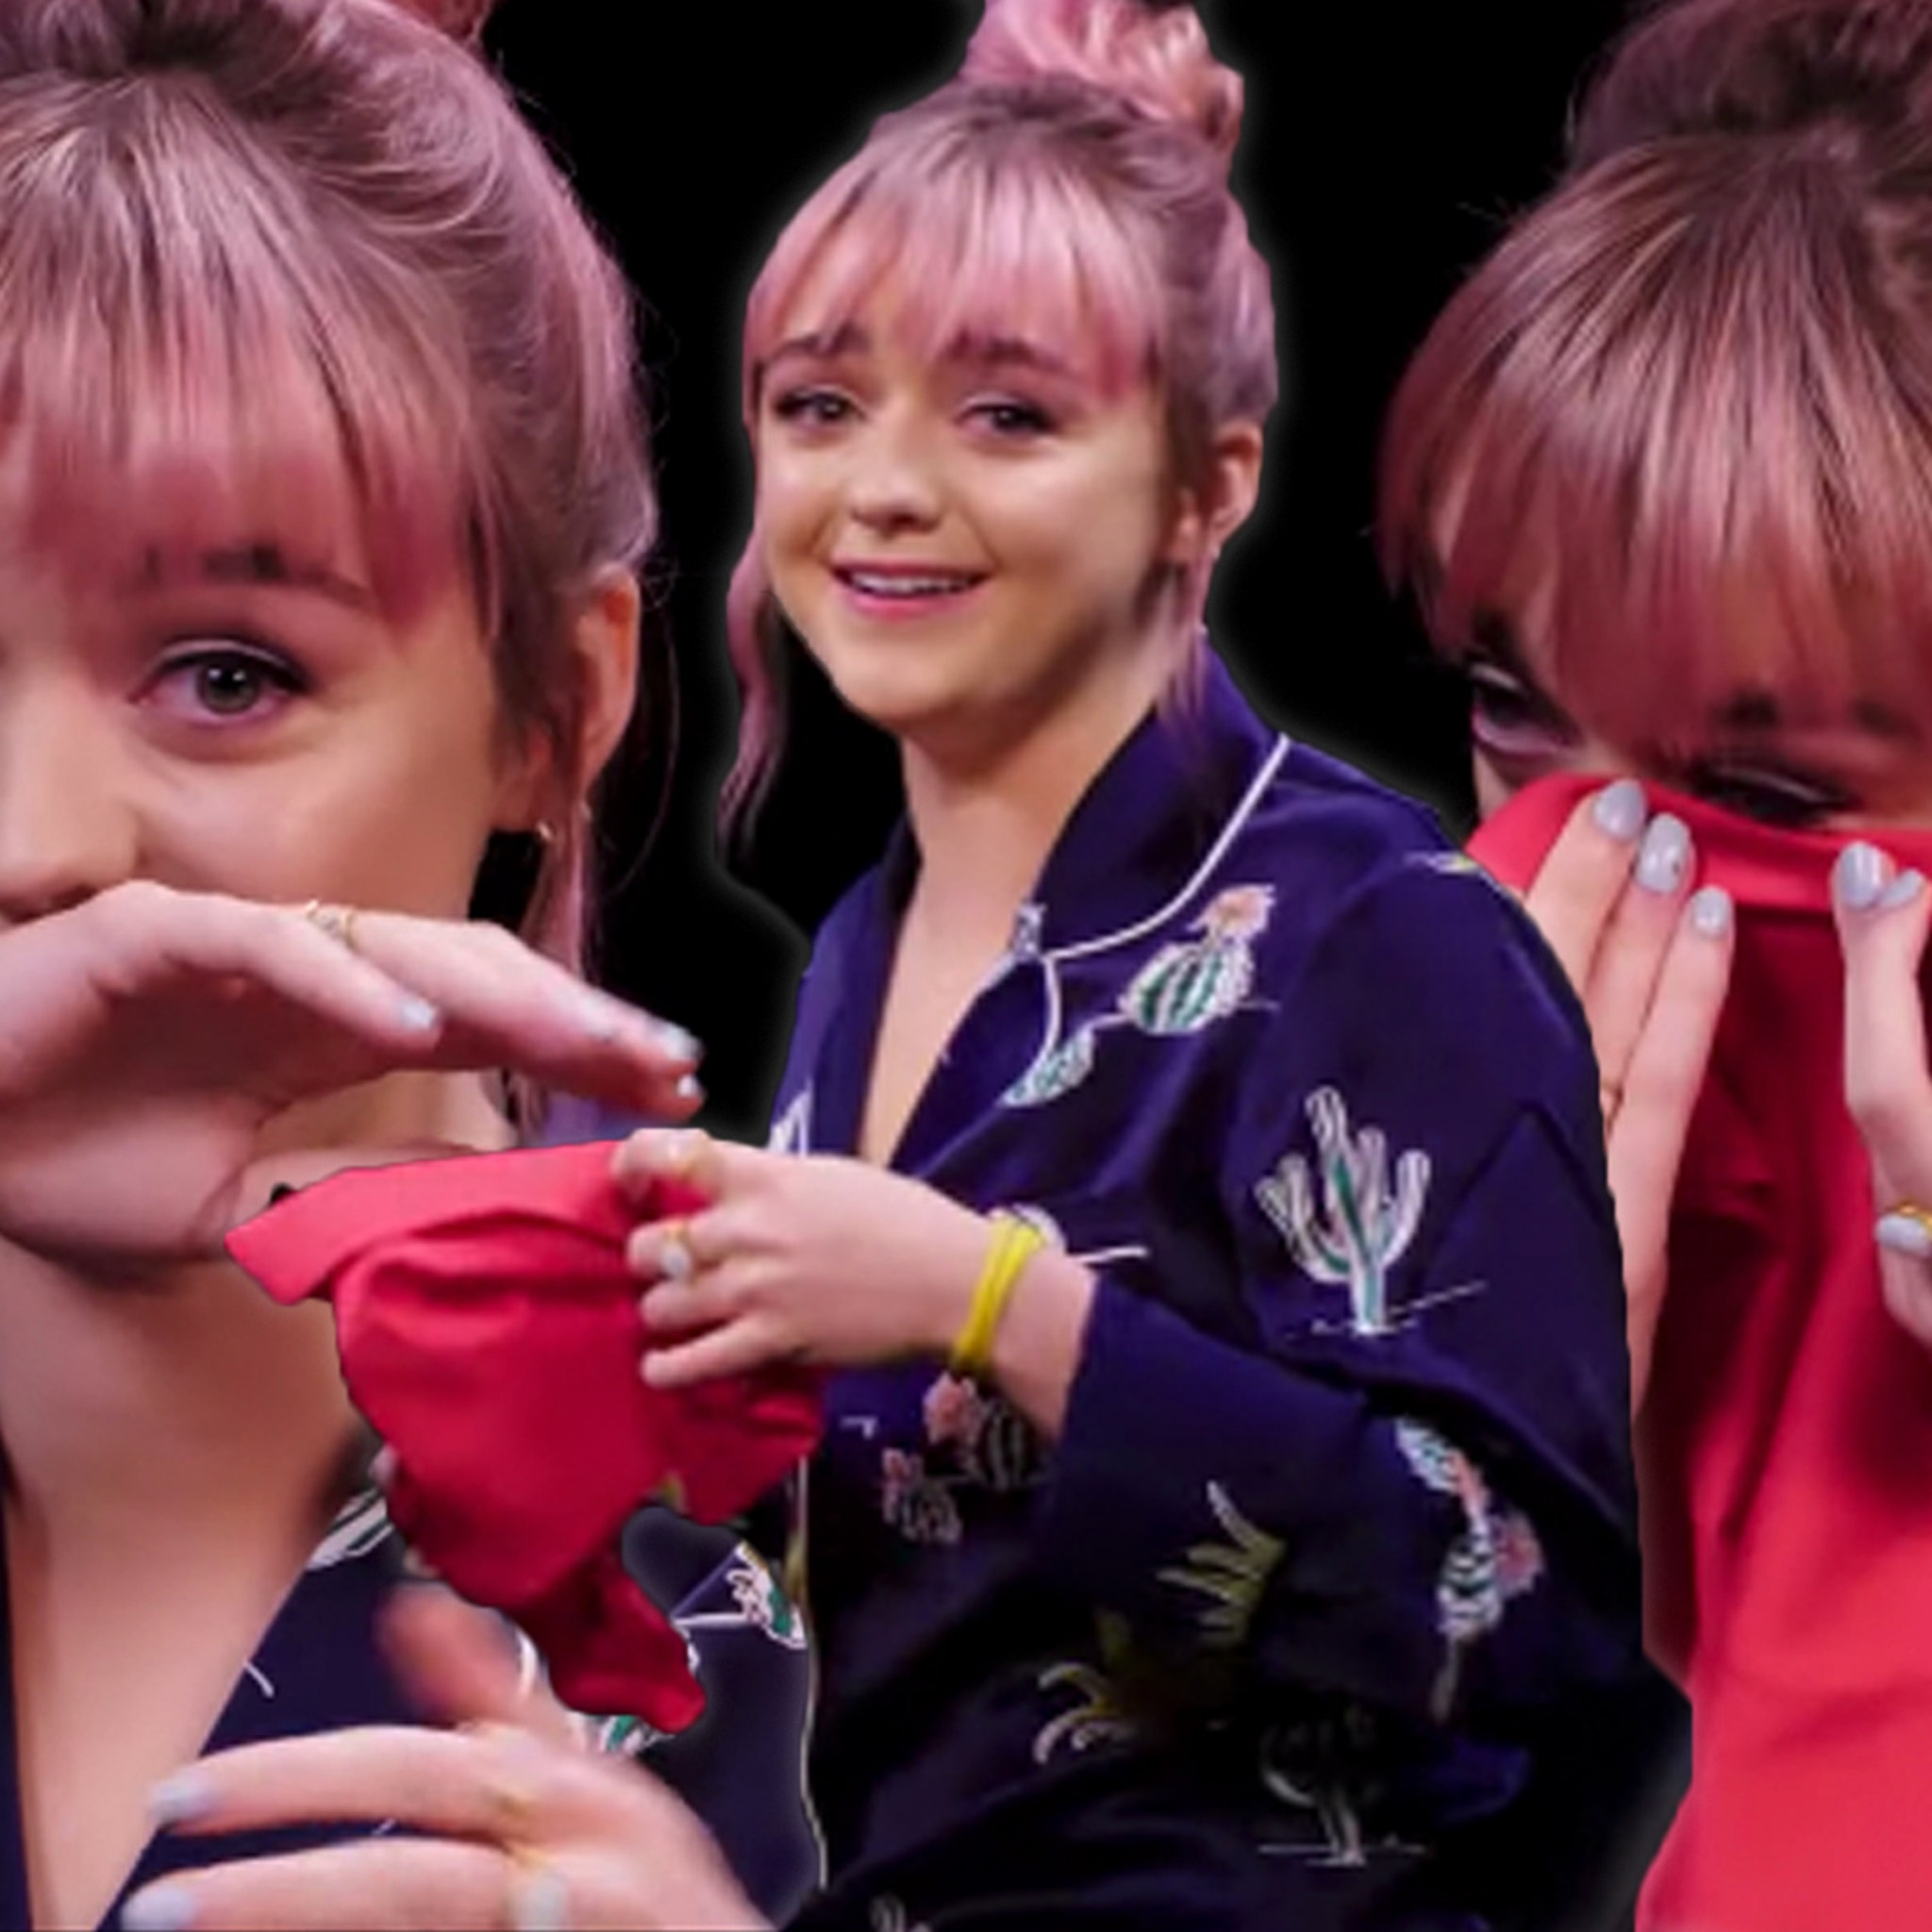 Maisie Williams Answers Burning Game Of Thrones Questions On Hot Ones 22 года (15 апреля 1997 г.) maisie williams answers burning game of